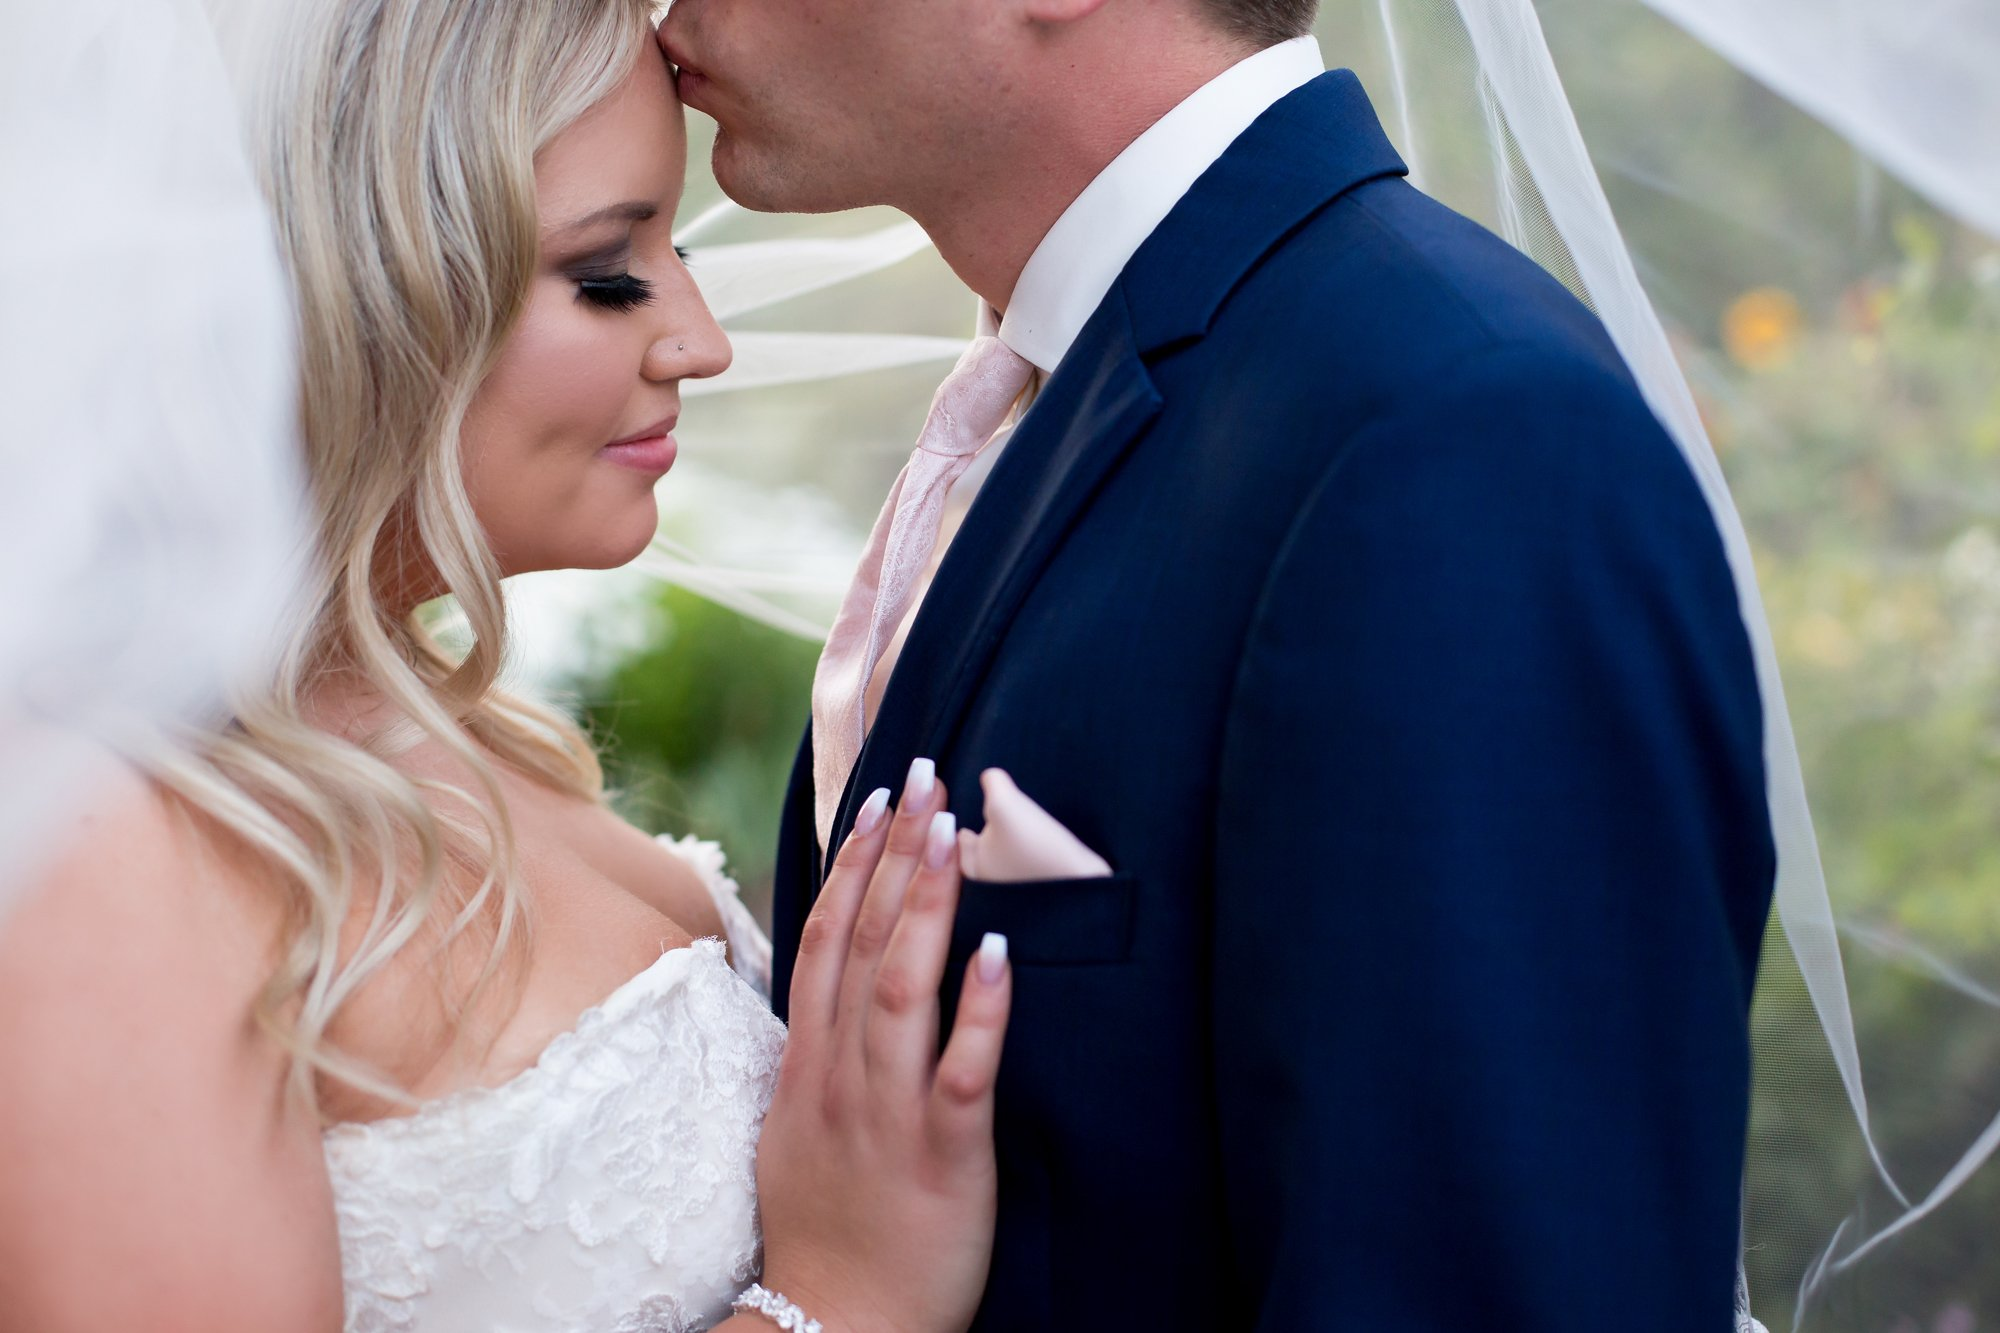 A groom kissing his bride's forehead